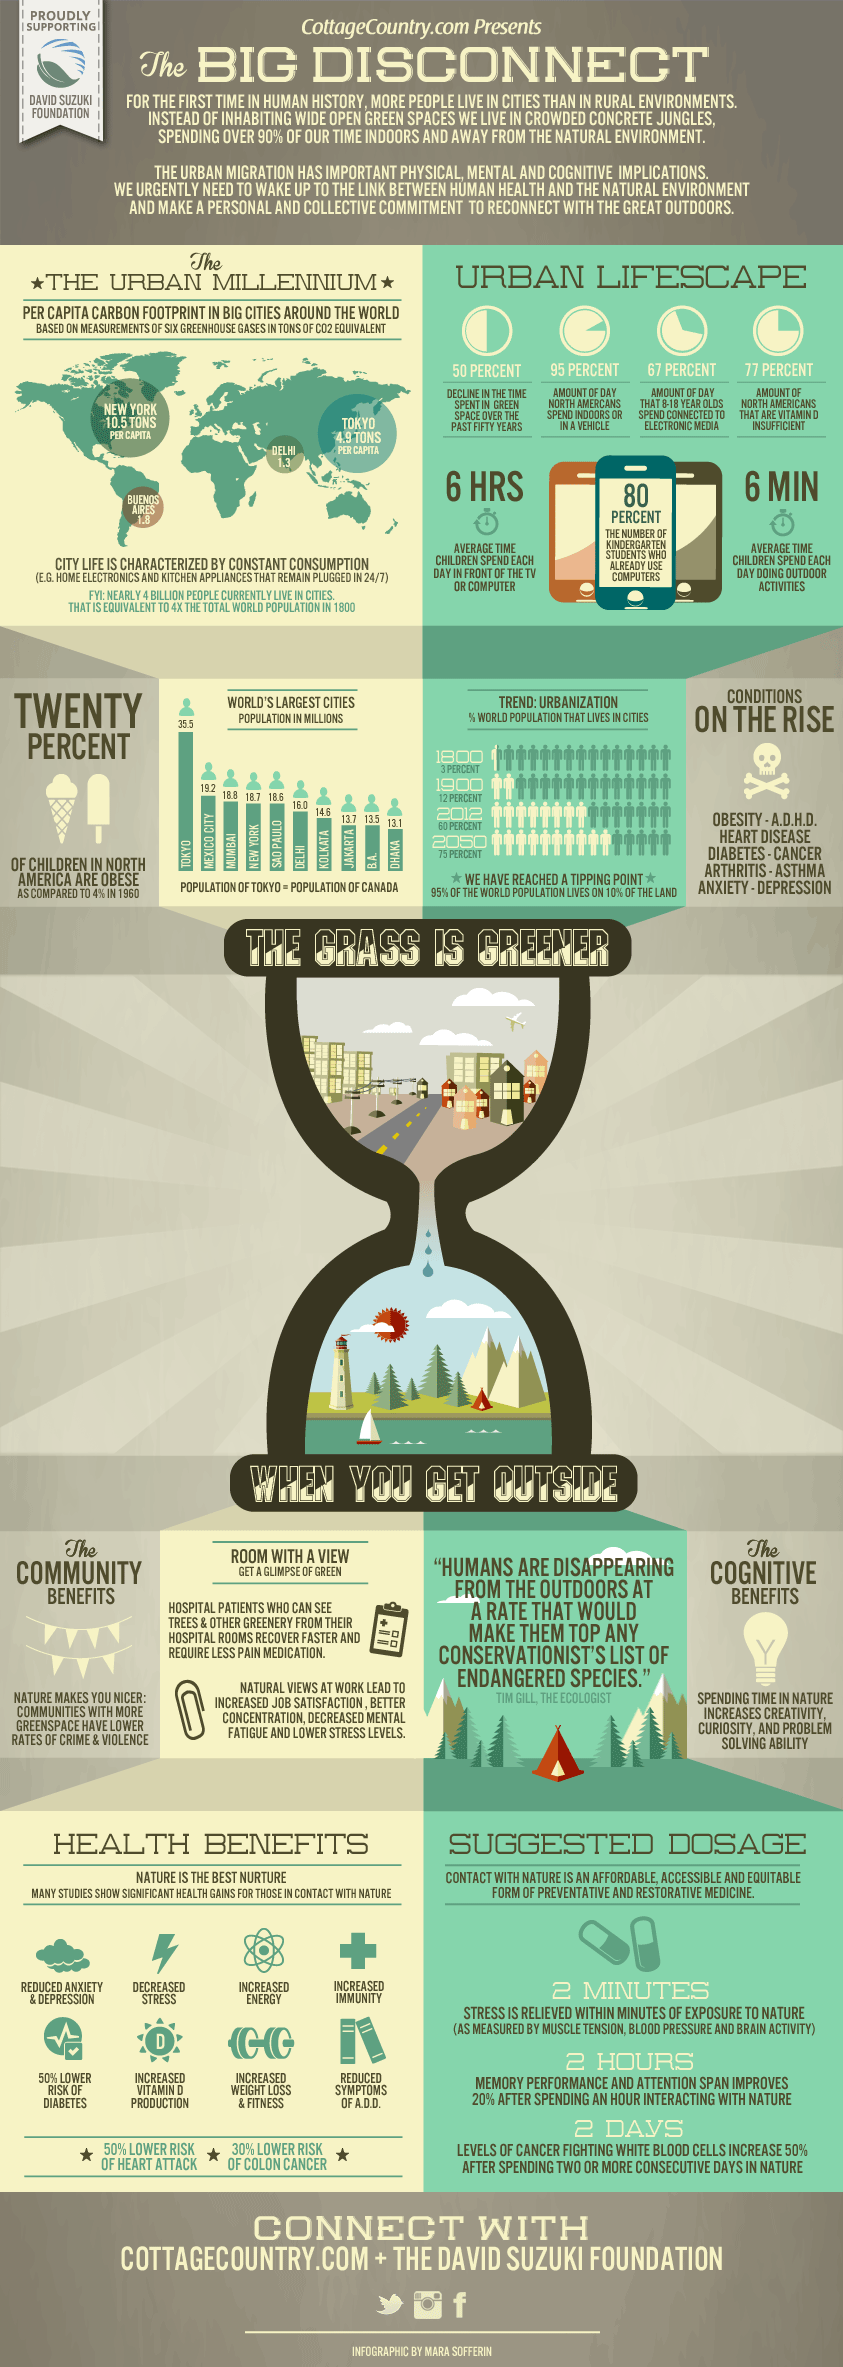 get-outside-infographic-cottagecountry1